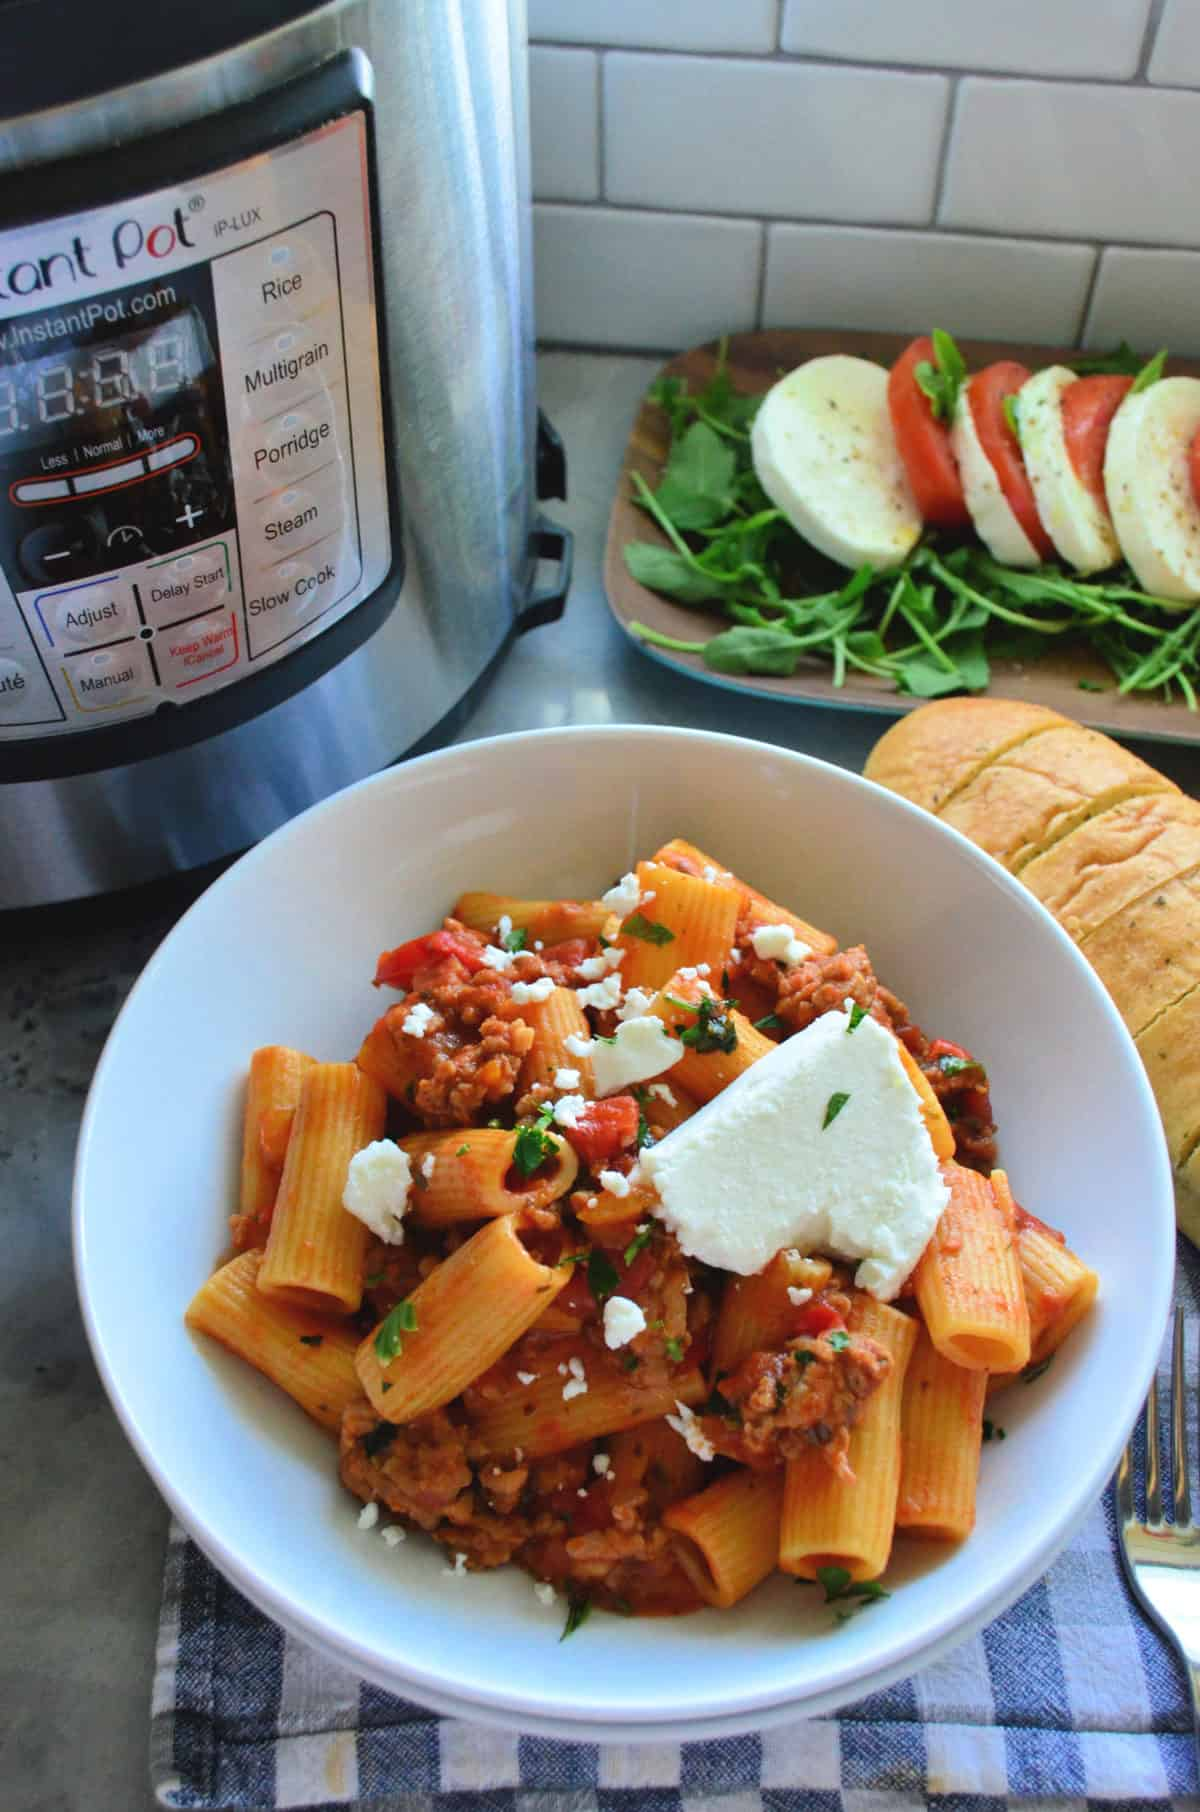 Plated Rigatoni noodles with meaty red sauce, basil, and cheese in front of instant pot and caprese platter.